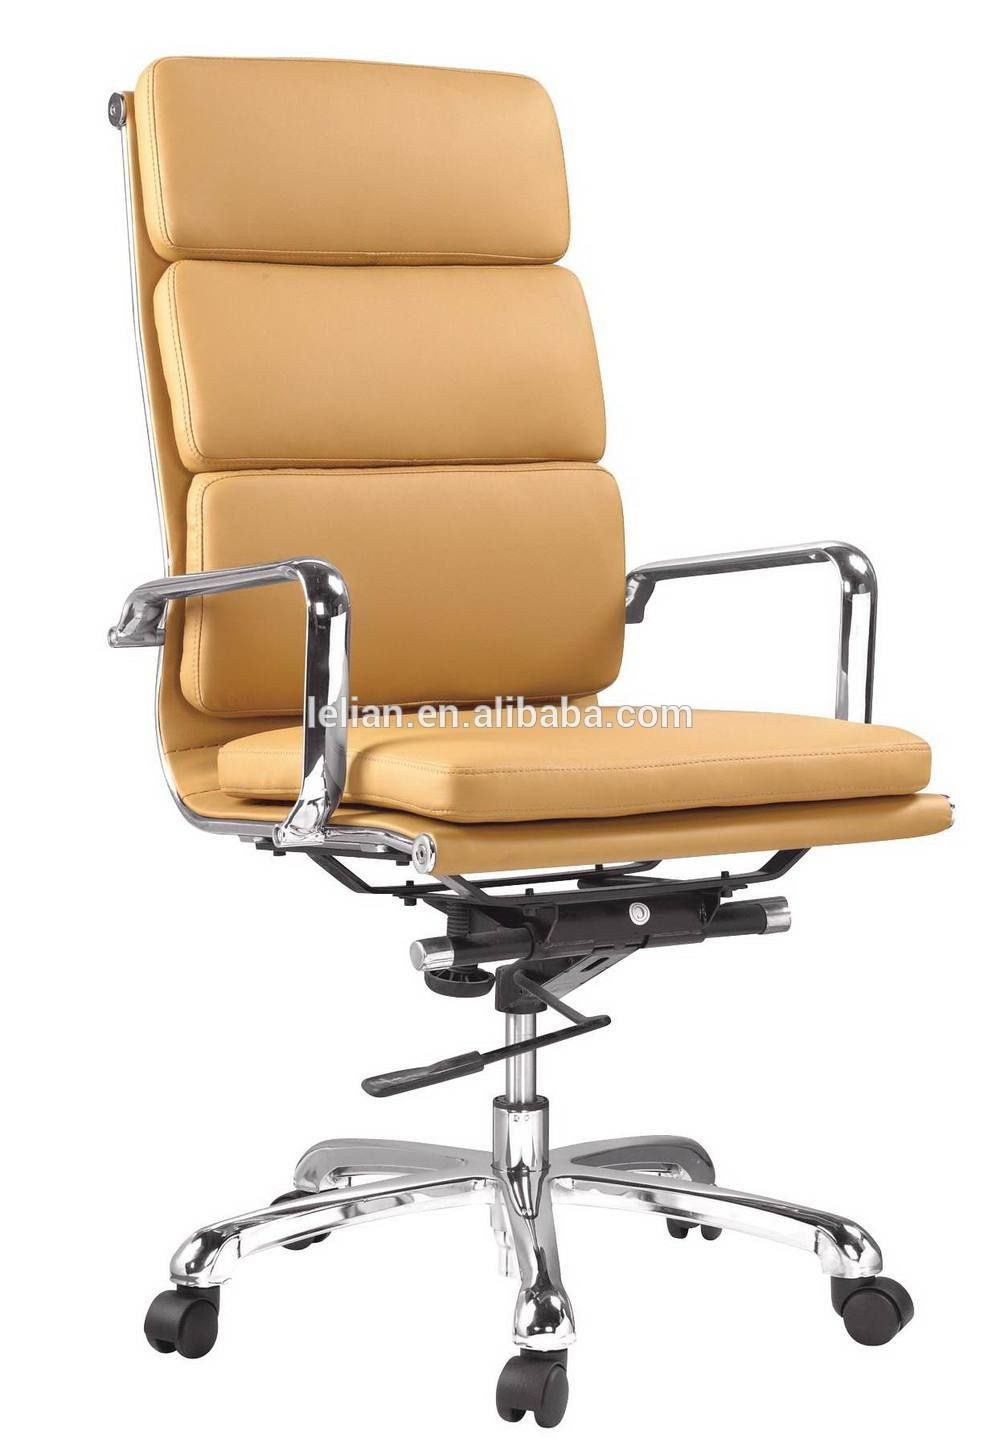 Office Chair Price Eames Molded Plywood Lounge With Wood Base Godrej Furniture List From Manufacturer L 88b